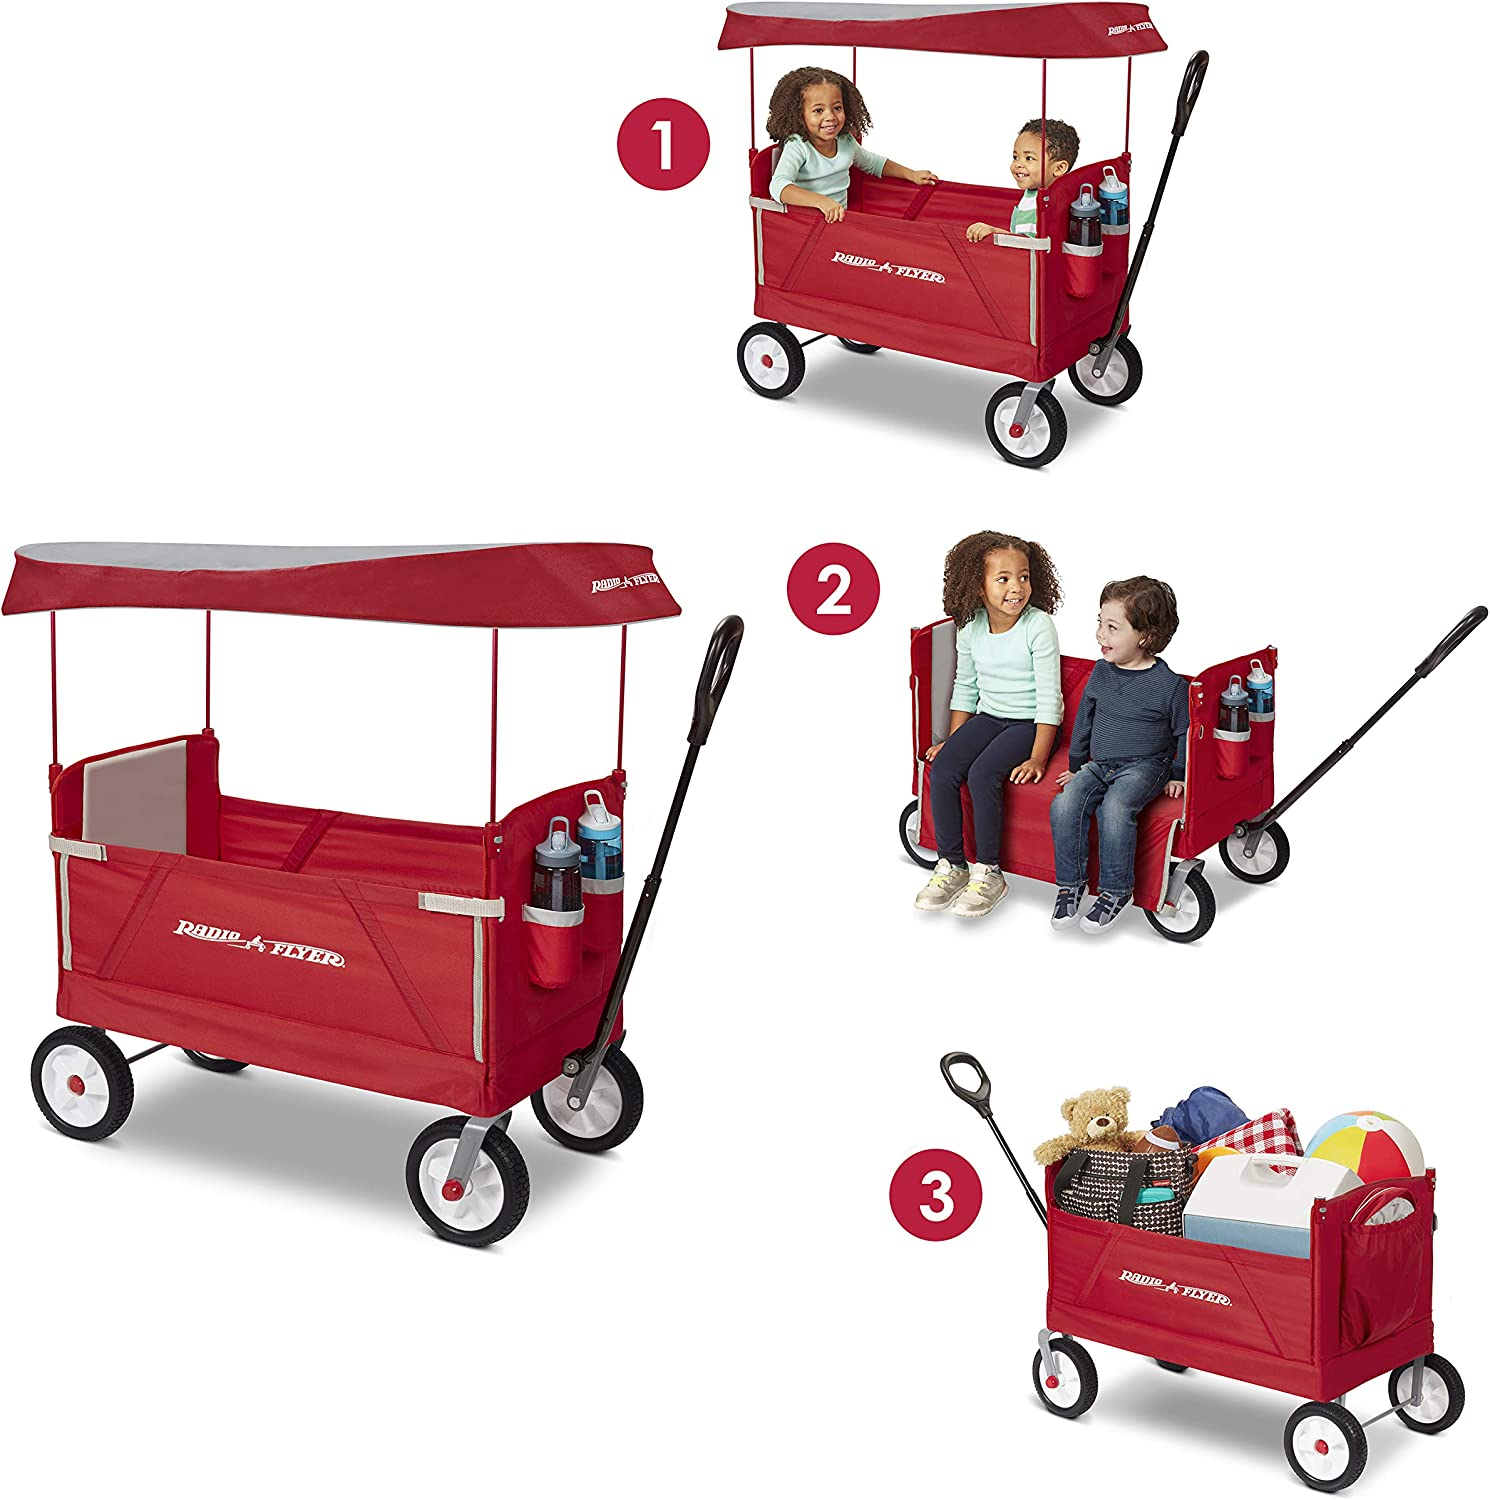 Radio Flyer 3 in 1 Off-Road EZ Fold Outdoor Collapsible Wagon for Toddlers and Cargo